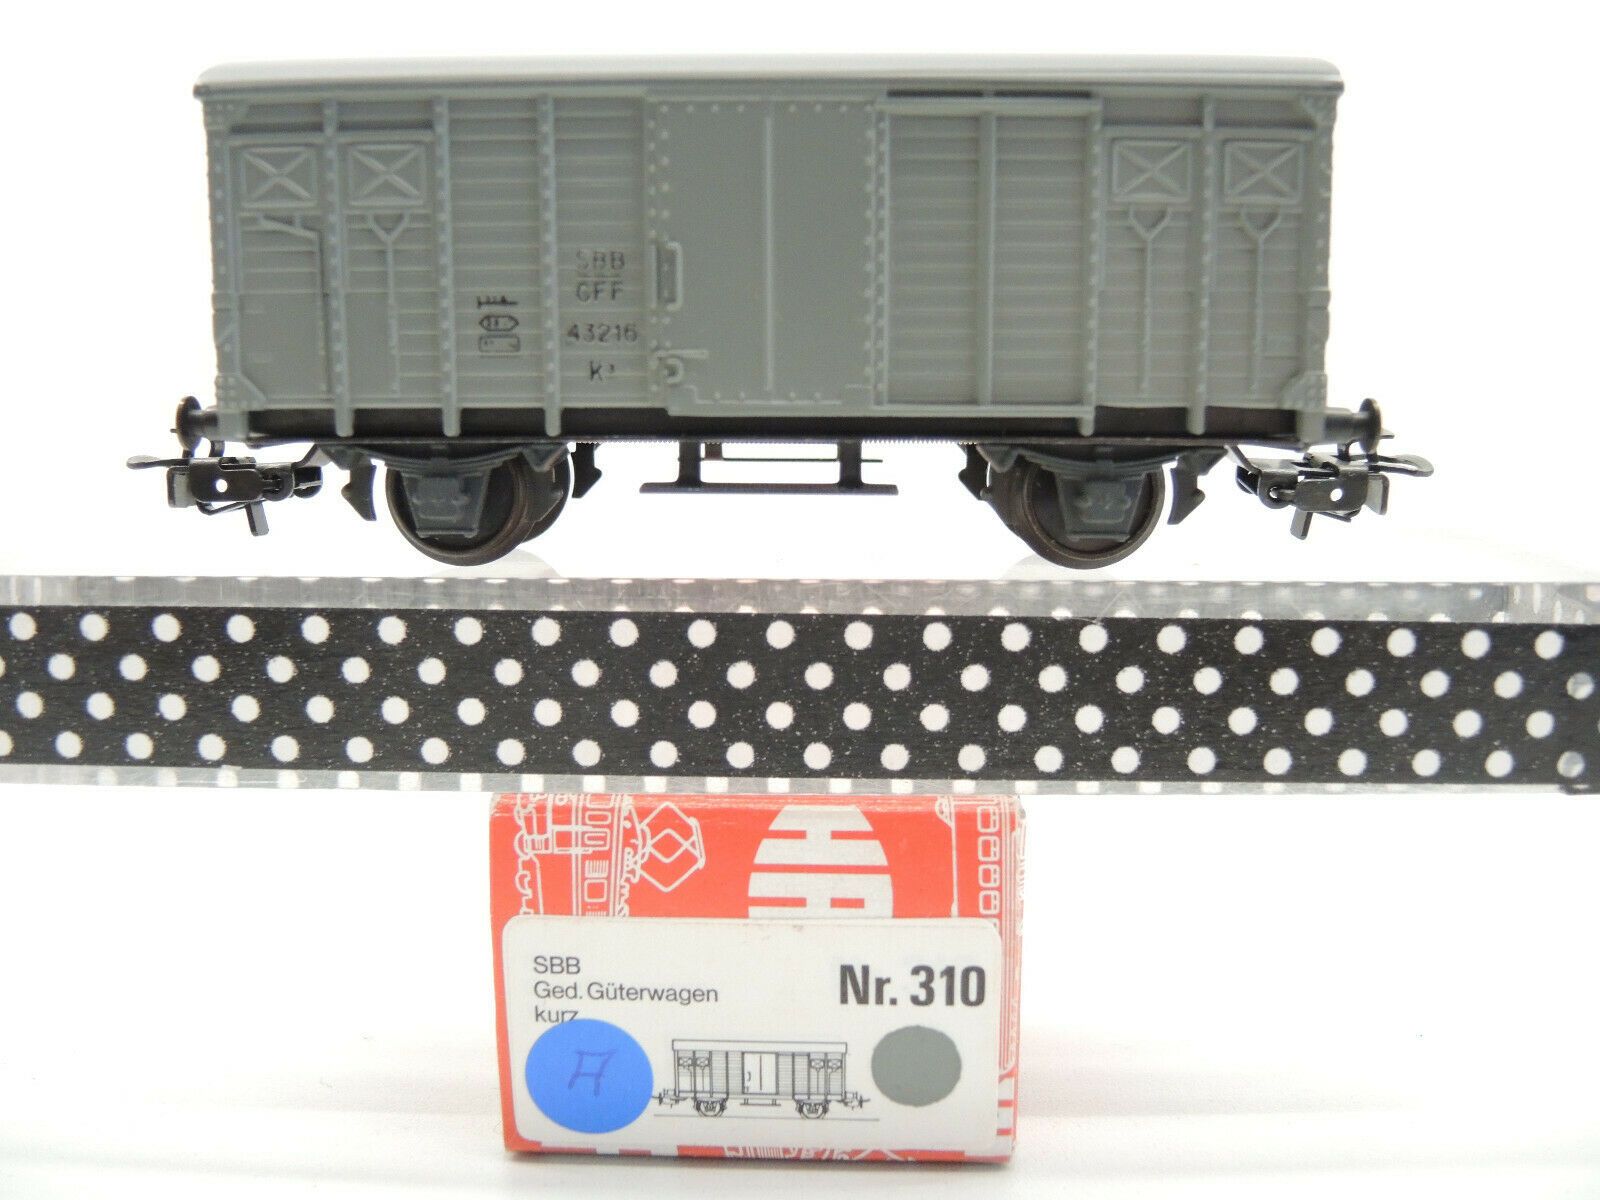 Hag 310 covered Freight Wagon of the SBB, Grey, 43216, Top, Original Box (A)